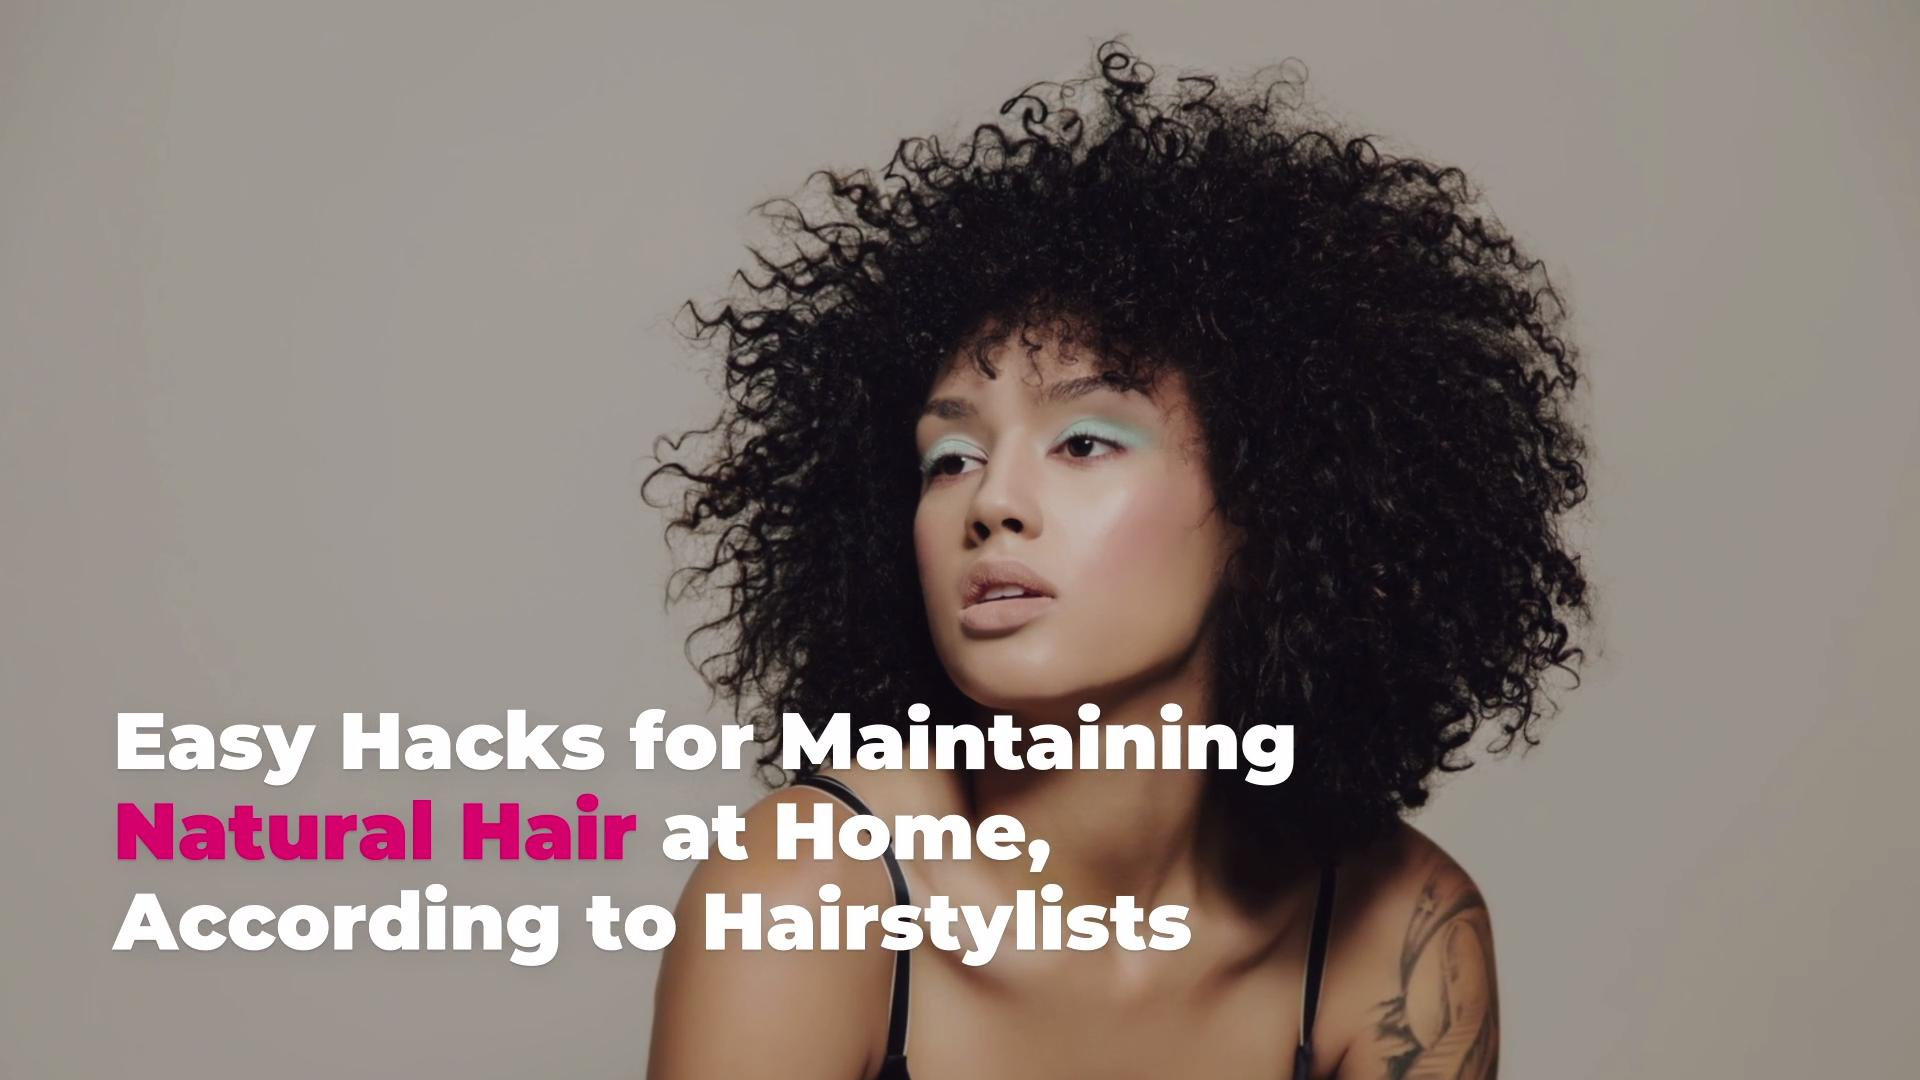 10 Easy Ways To Maintain Natural Hair At Home According To Hairstylists Real Simple